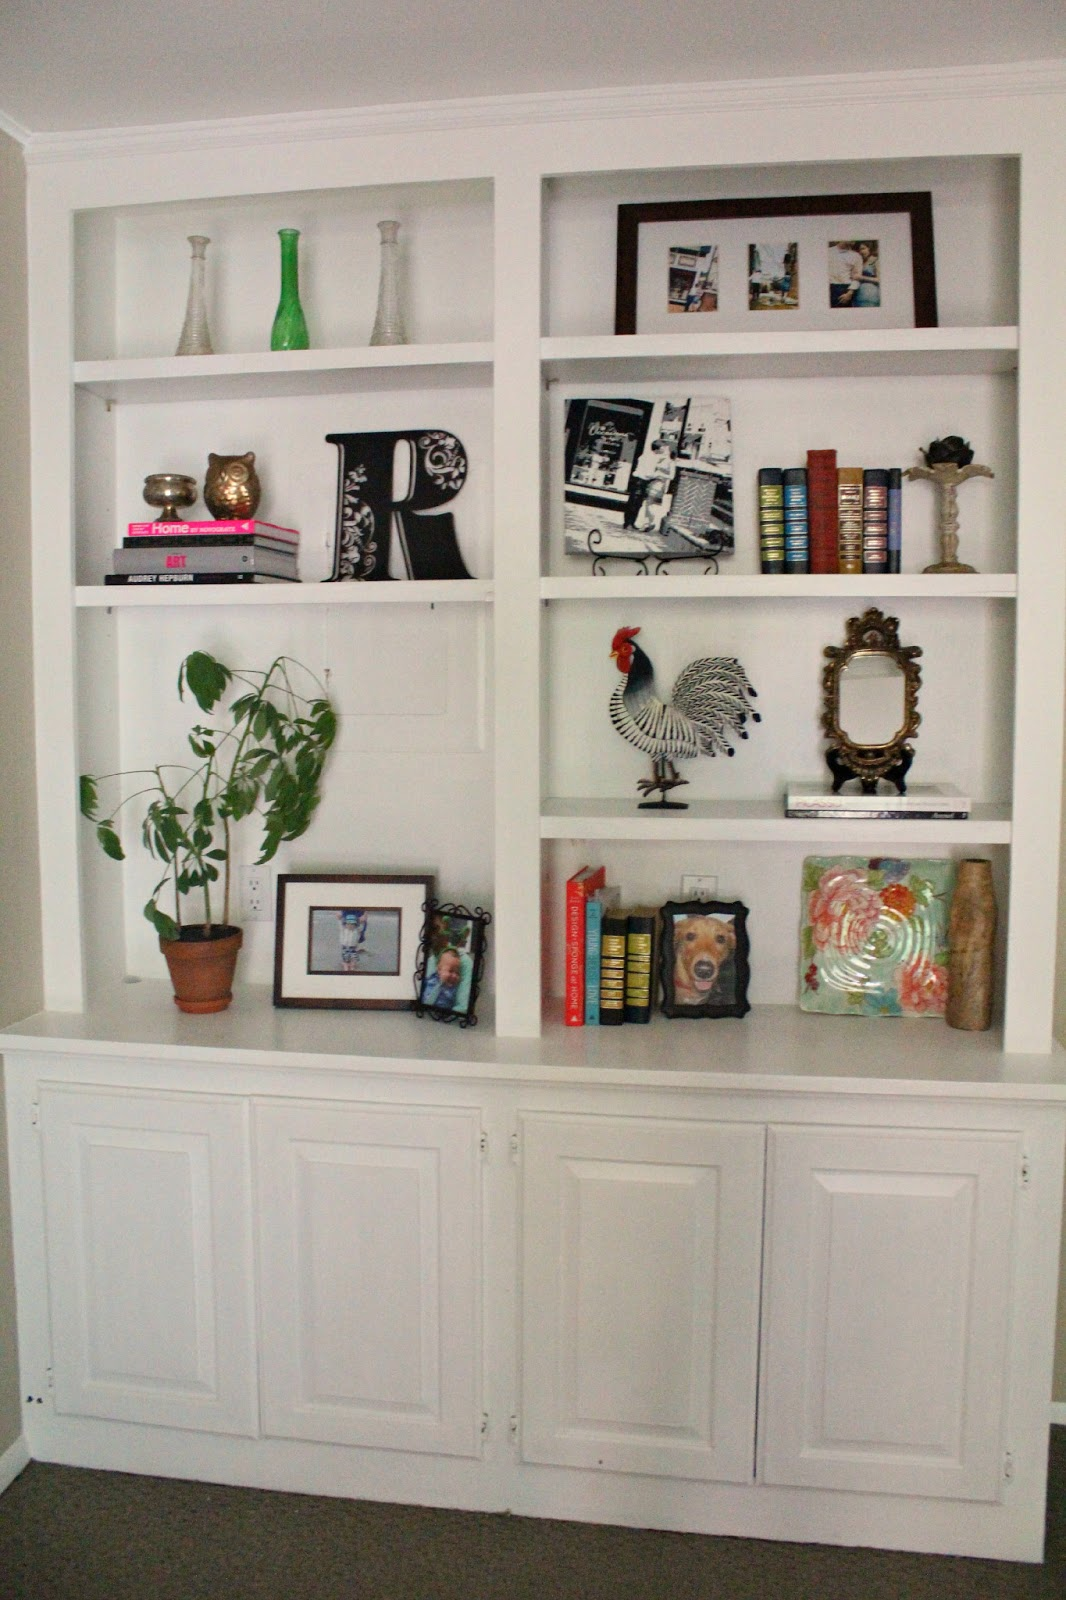 Ten june my living room built in bookshelves are styled - Shelves design for living room ...